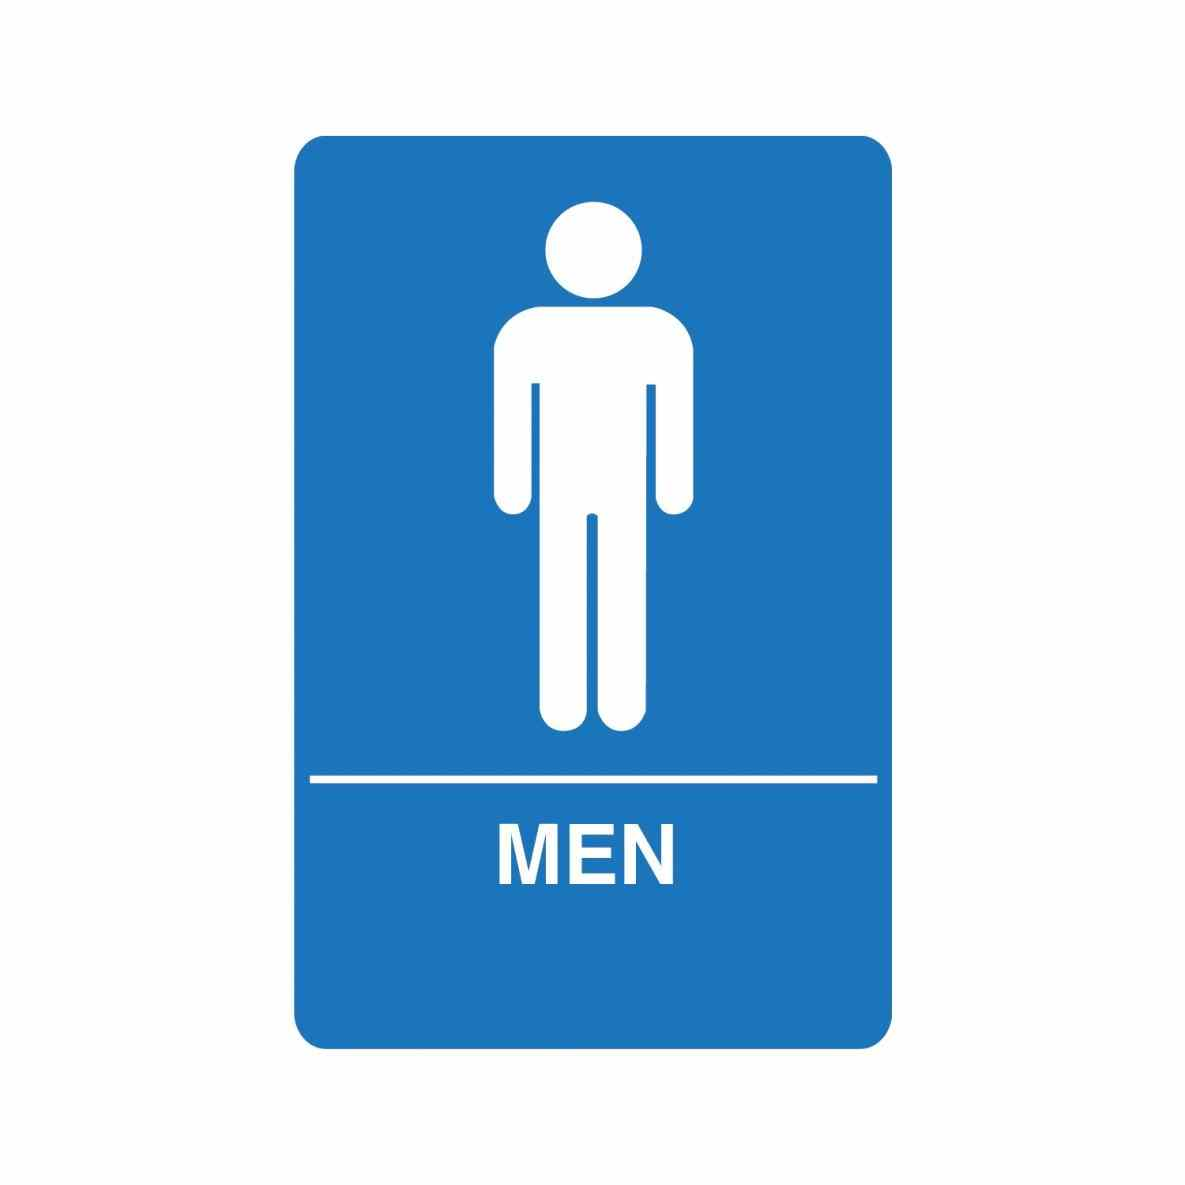 photograph relating to Printable Bathroom Sign titled Cost-free Printable Restroom Indicators Clipart Totally free down load simplest